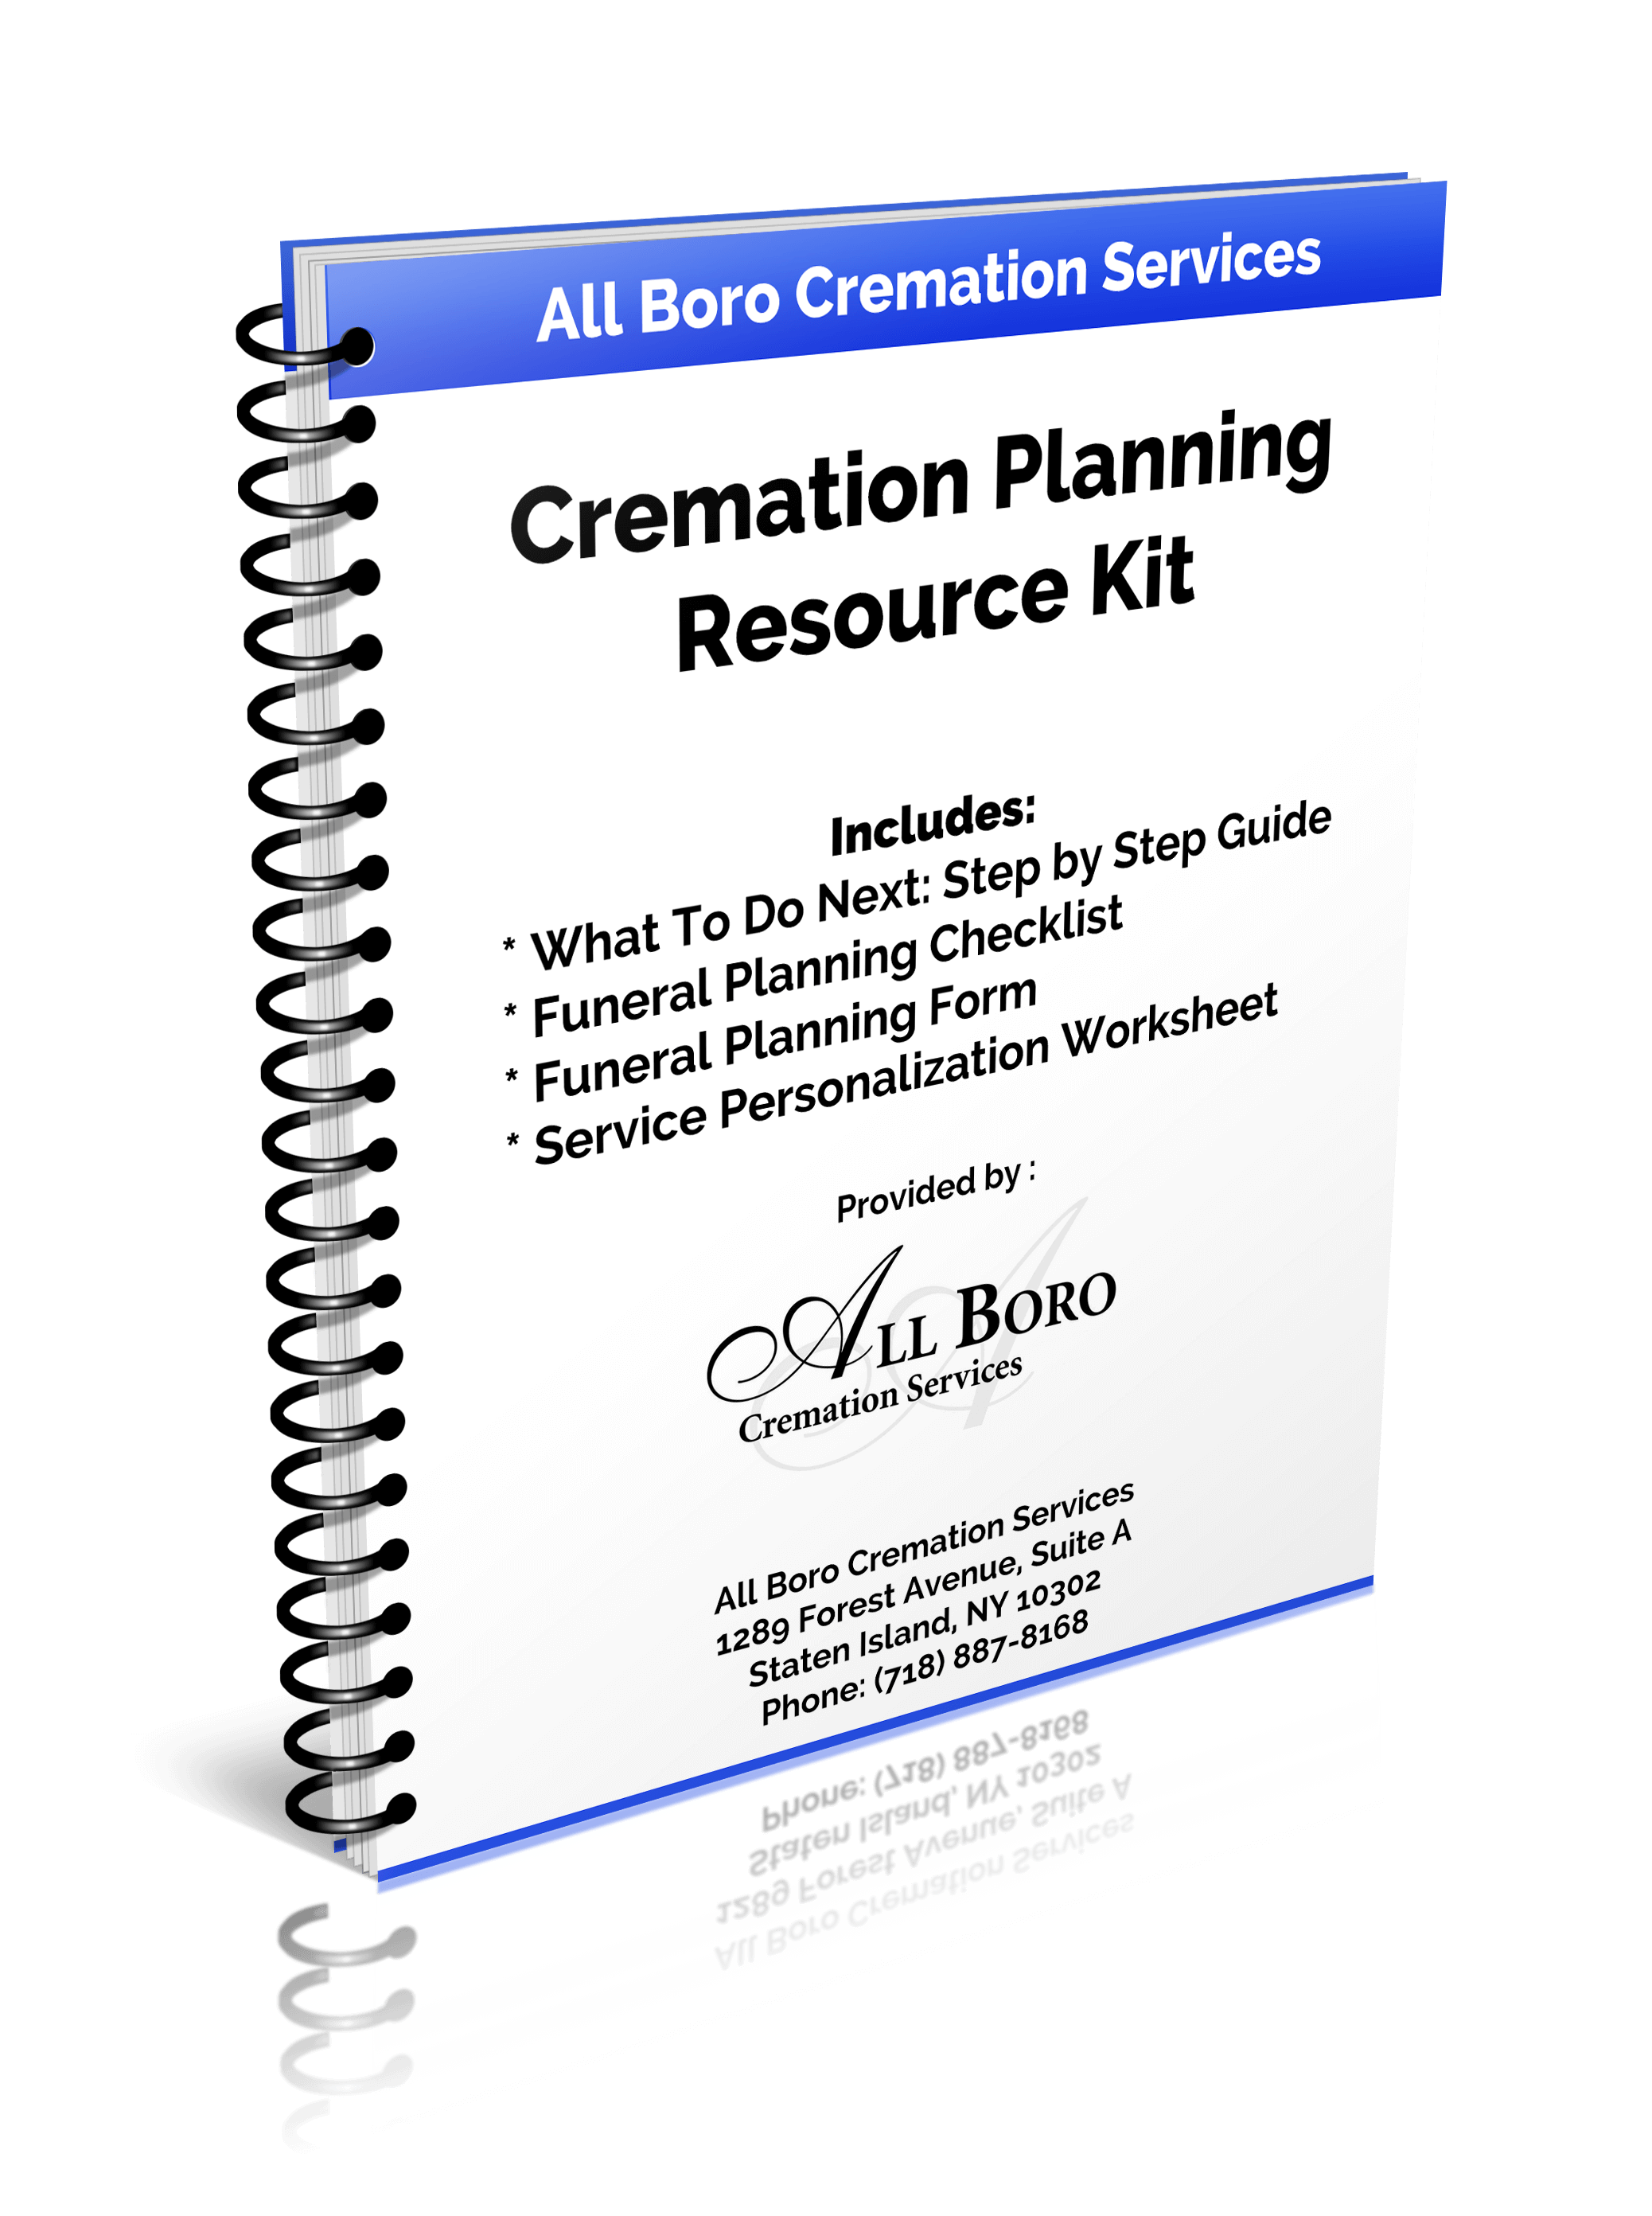 Download Your Free Resource Kit